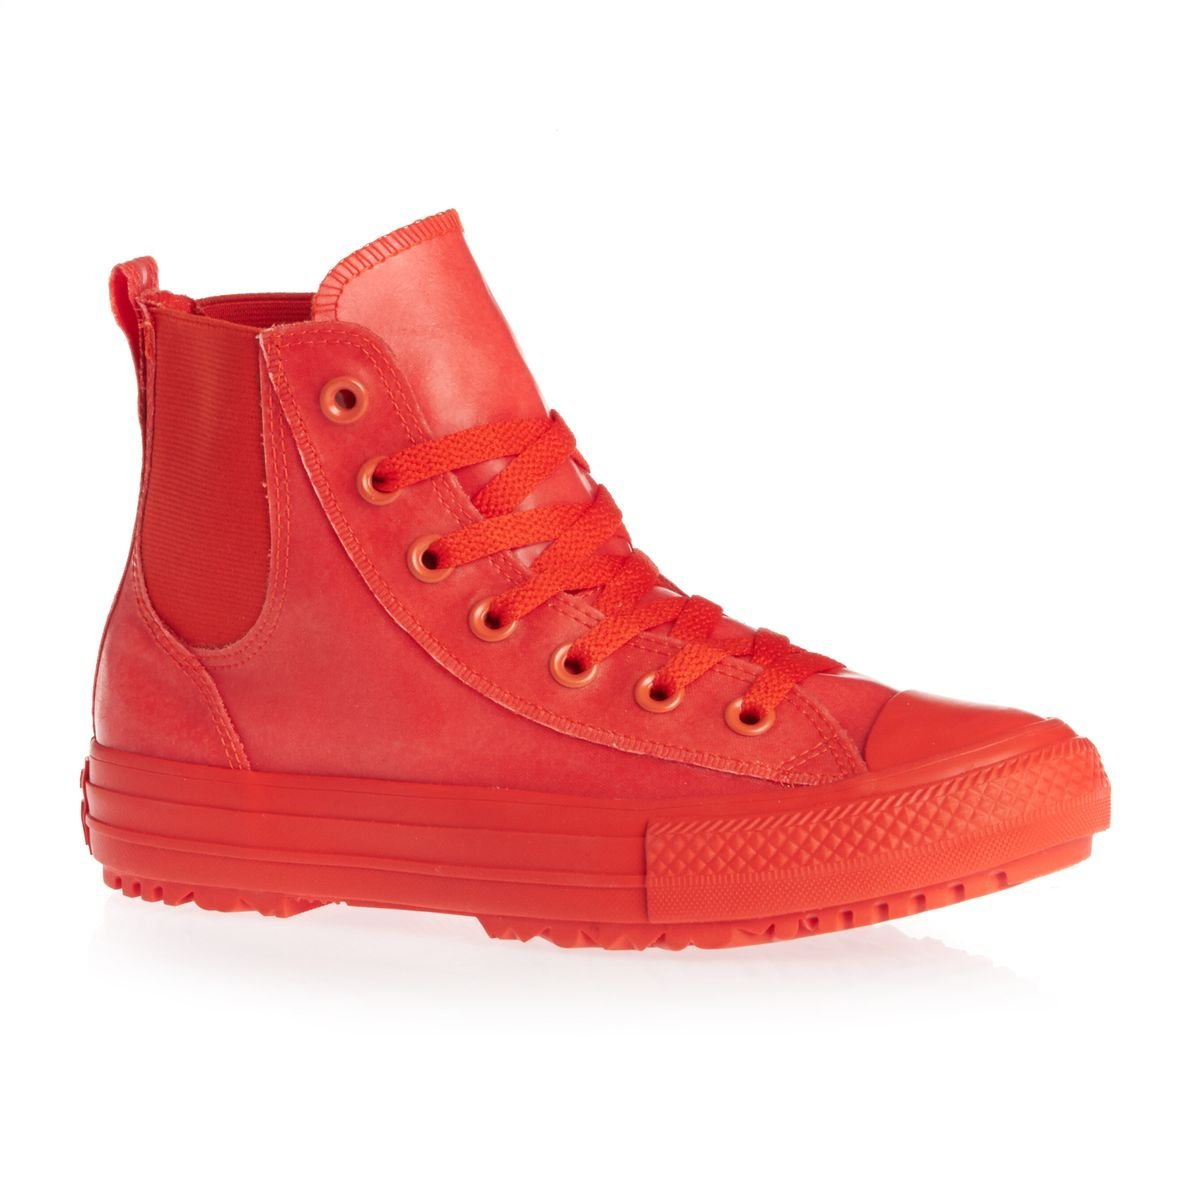 Converse Women's Chuck Taylor All Star Rubber Chelsee Boot B0193WYKS8 38 M EU|Red